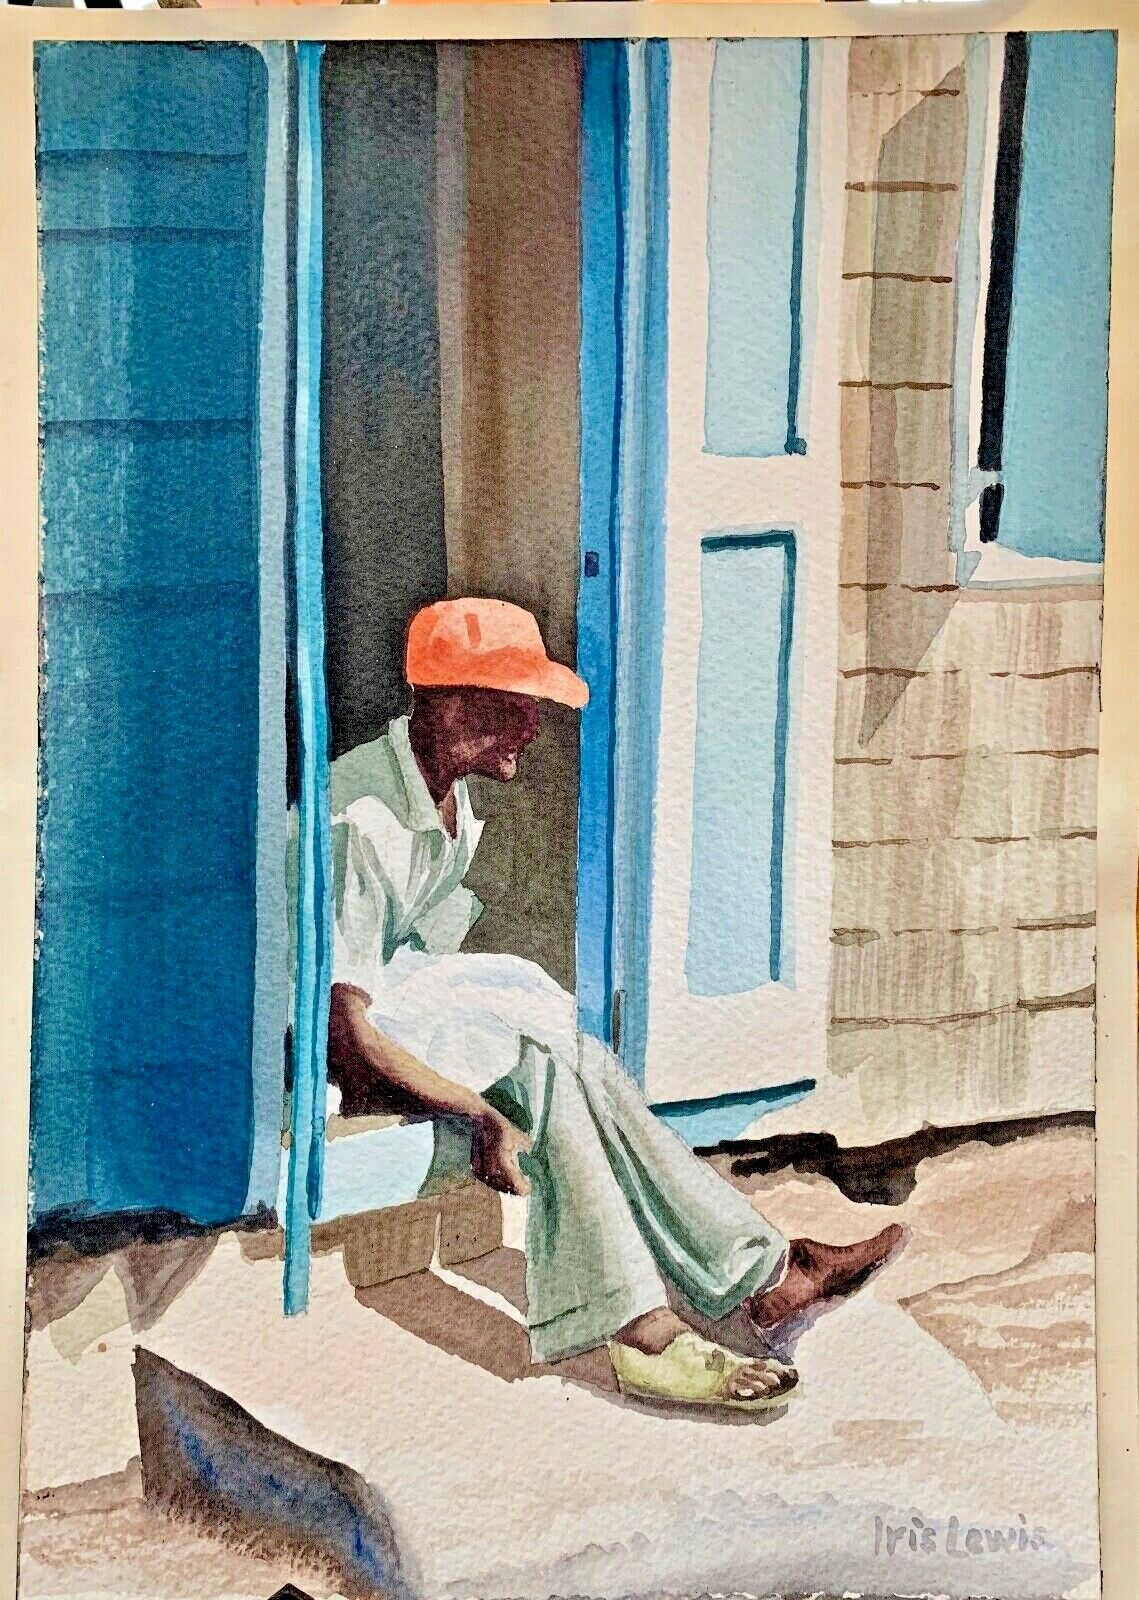 Watercolor Painting, Anguilla , Artist Iris Lewis - 1980 s - $15.00